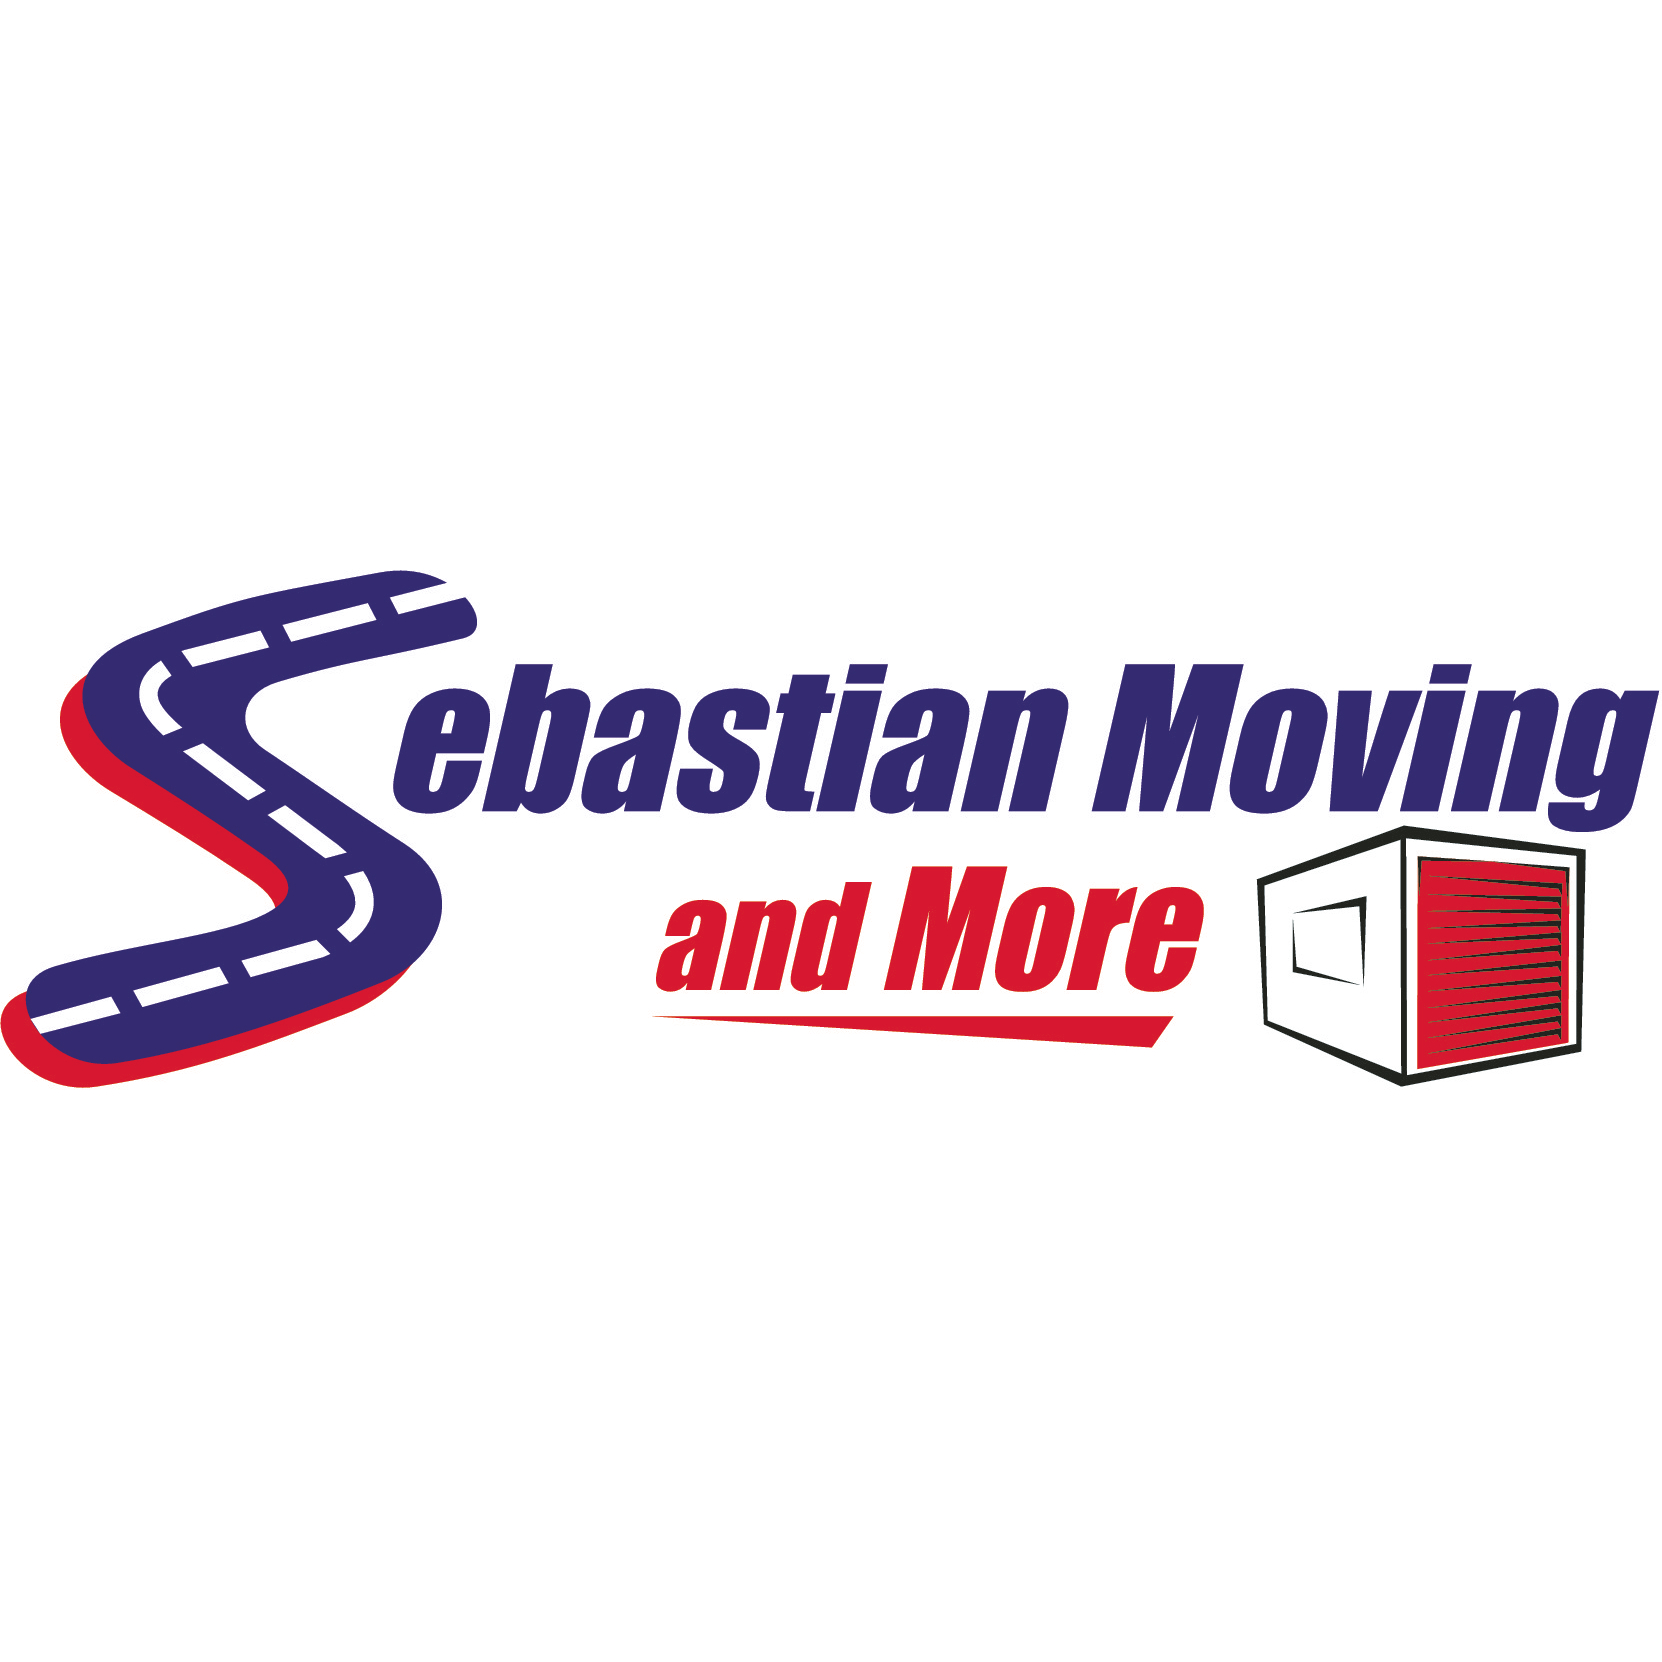 Sebastian Moving And More - ad image